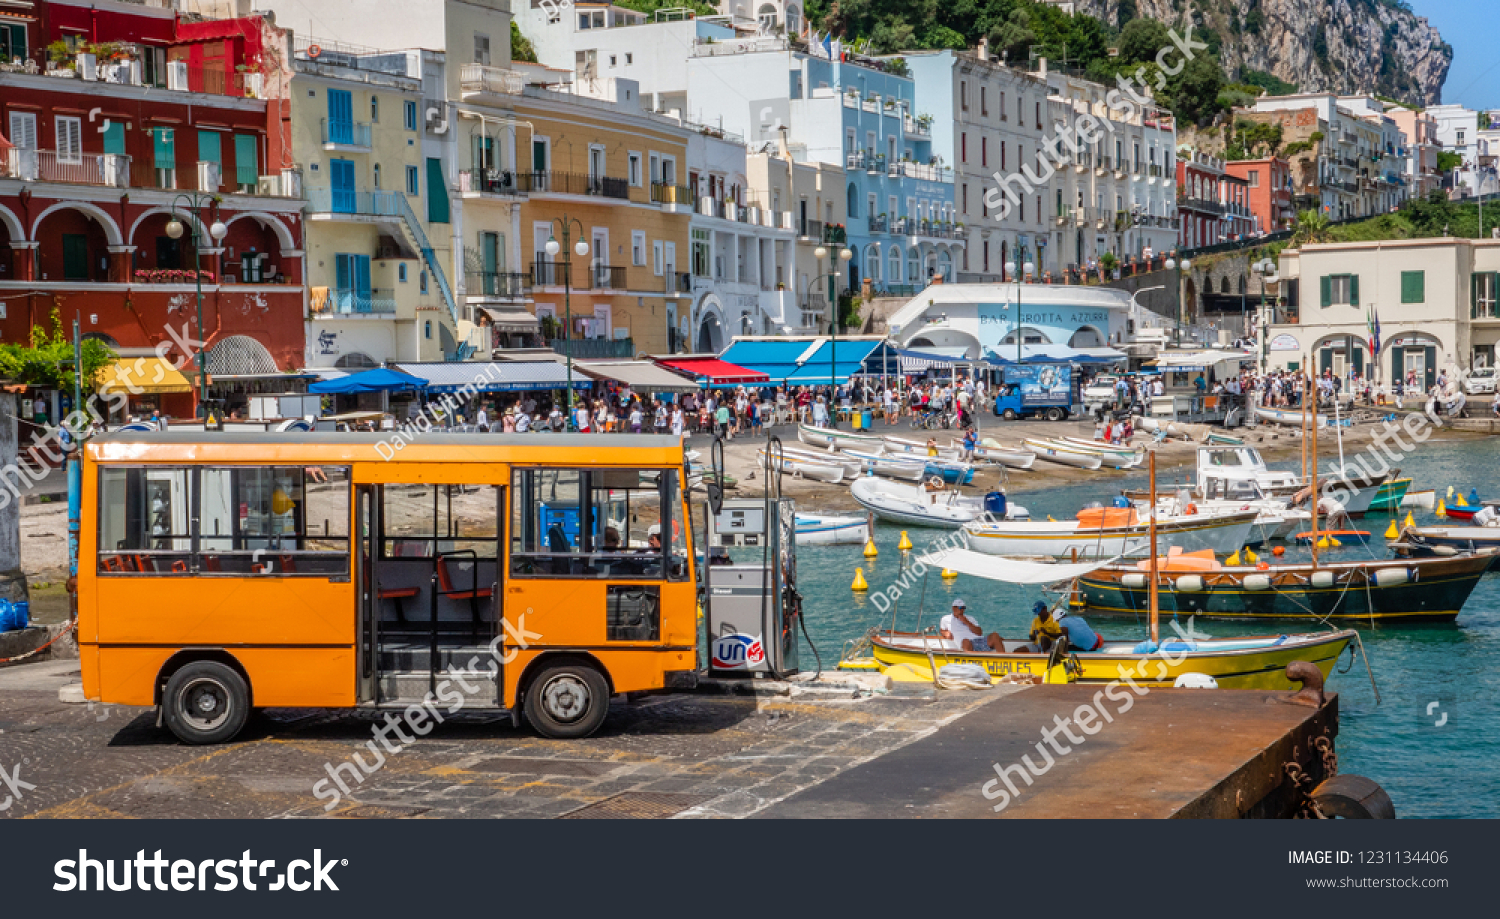 Capri, Italy - June 11, 2018: An orange shuttle bus fills up at a gas station on the dock at Marina Grande, with boats in the marina and colorful buildings along the coast.